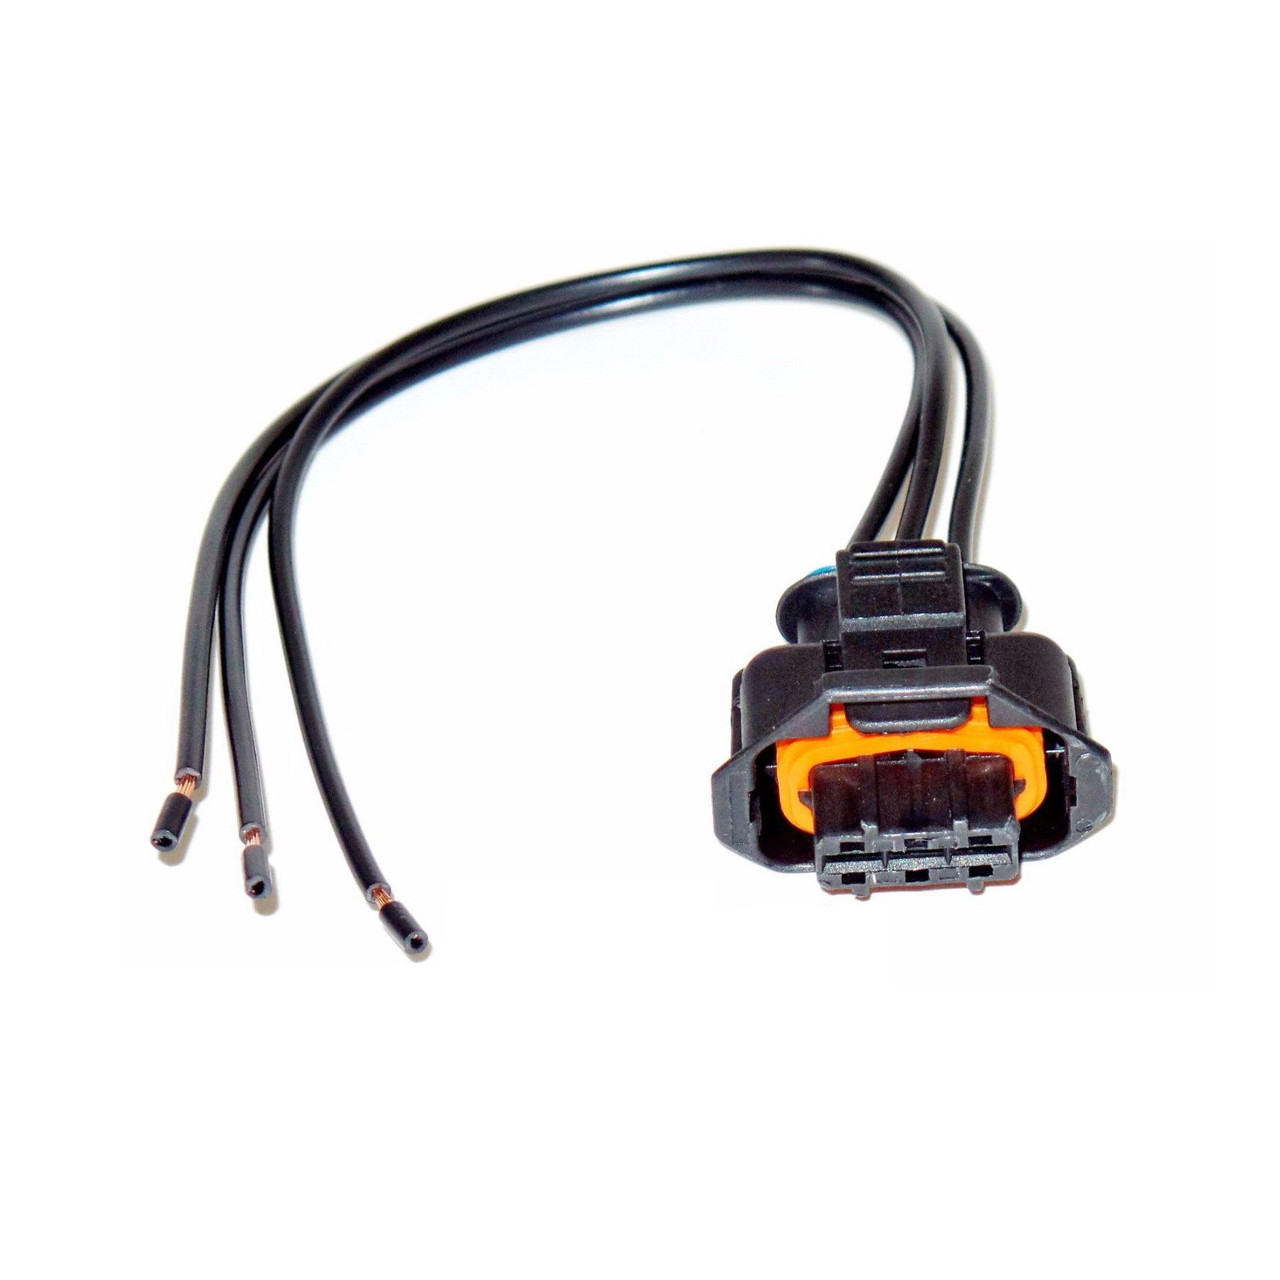 gm ls3 map sensor wiring diagram wiring library map sensor connector harness pigtail for 2008 2013 [ 1280 x 1280 Pixel ]